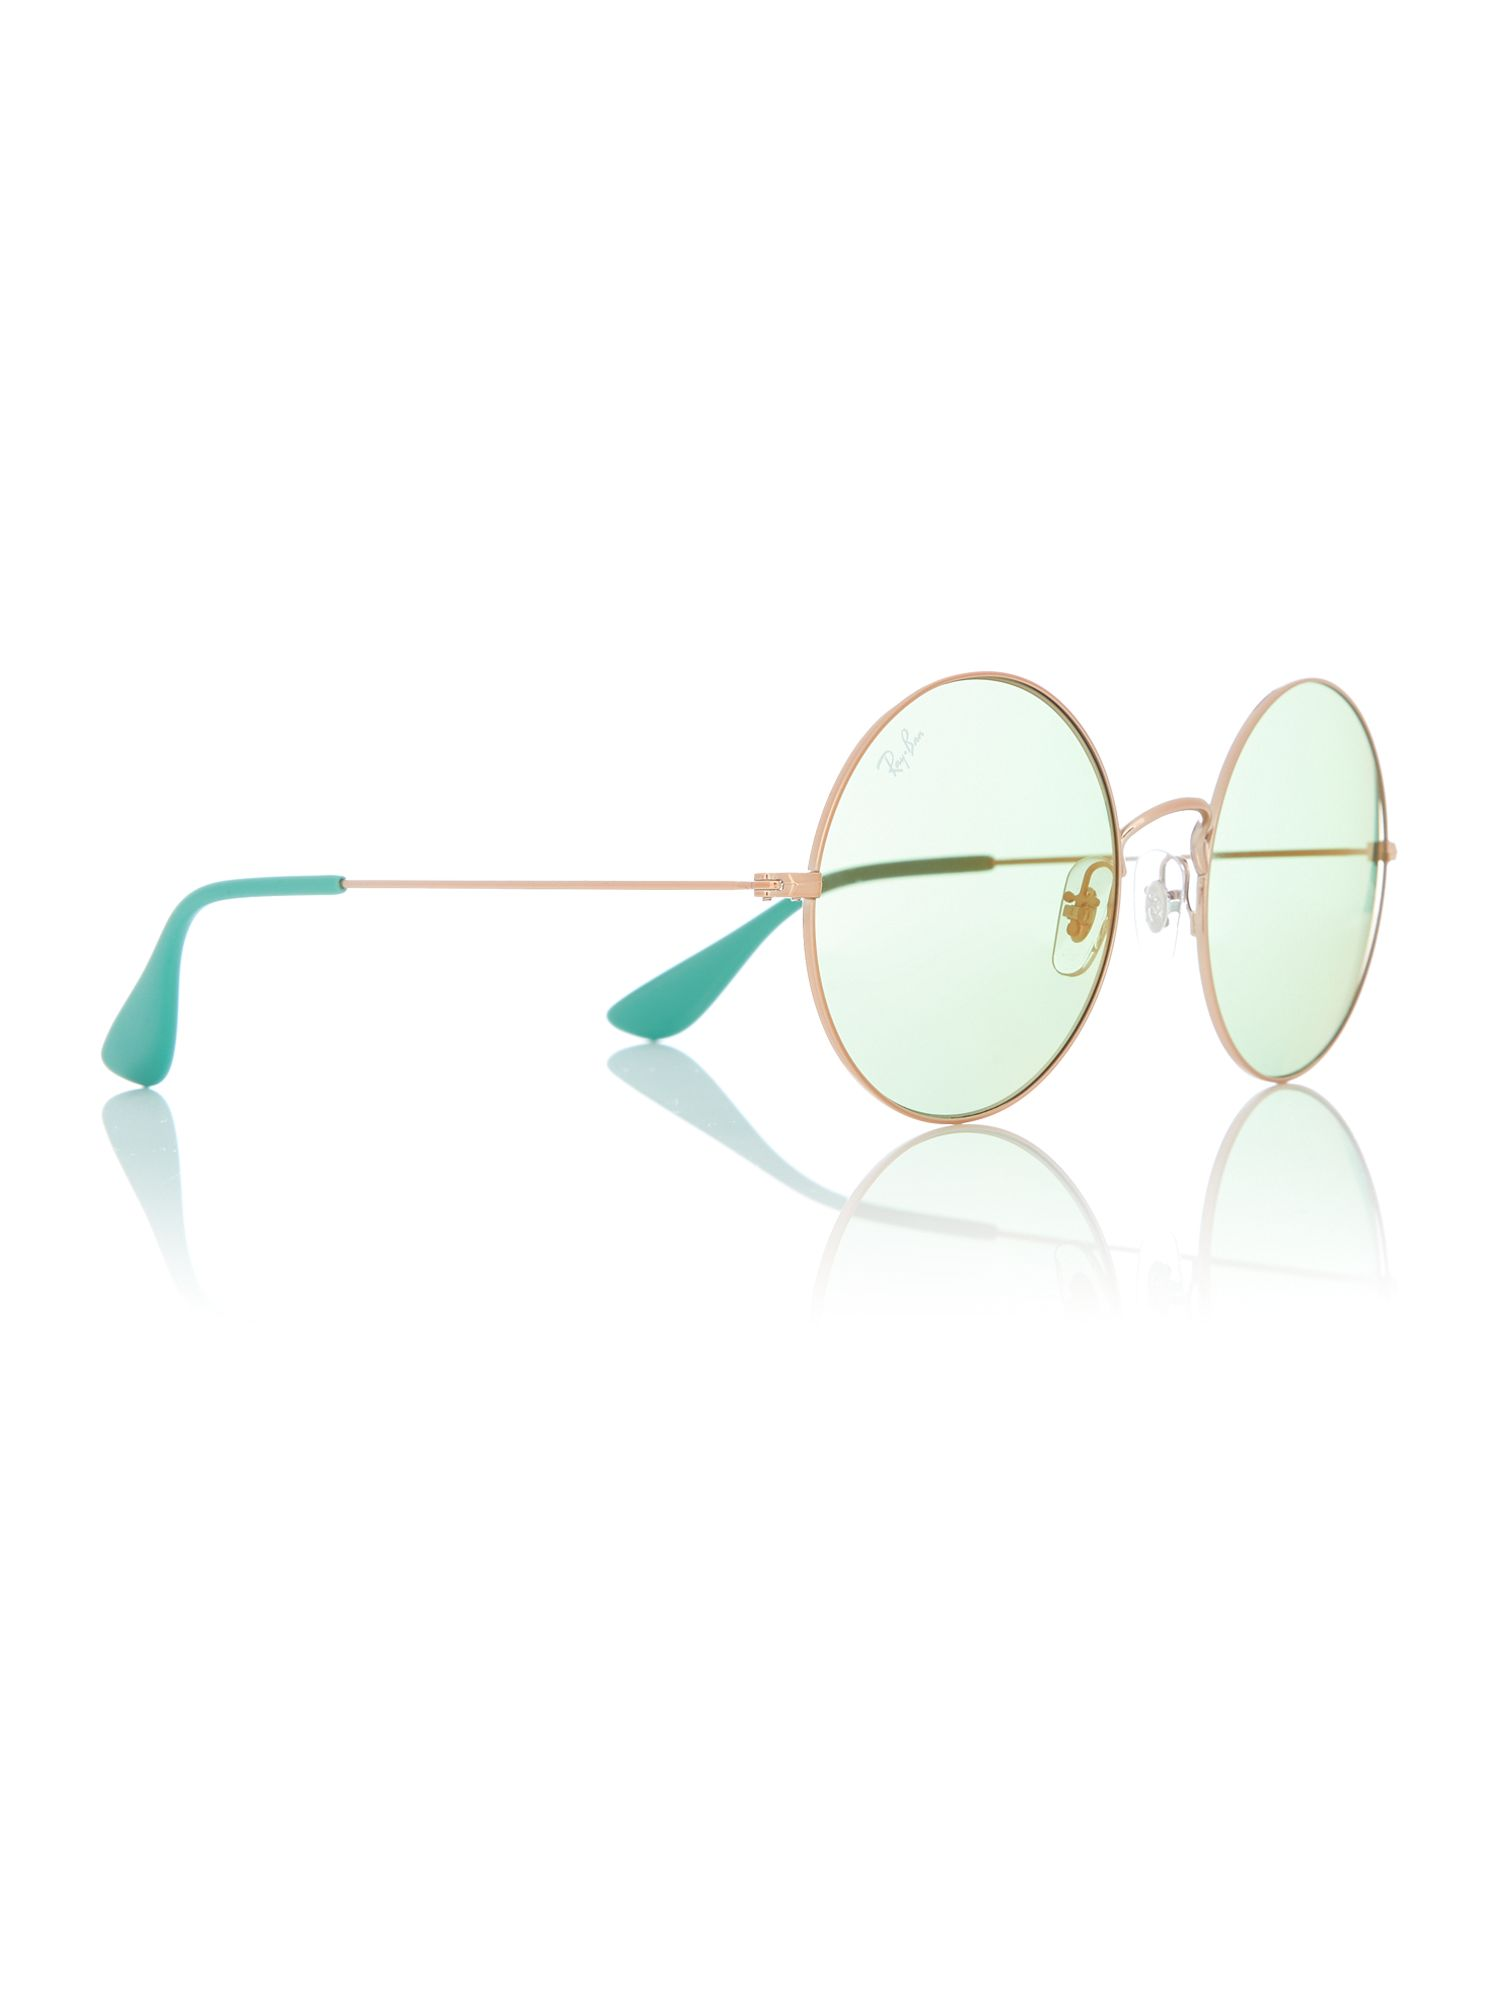 shop for brown women s sunglasses house of fraser Ray-Ban Sunglasses 2132 ray ban brown rb3592 round sunglasses